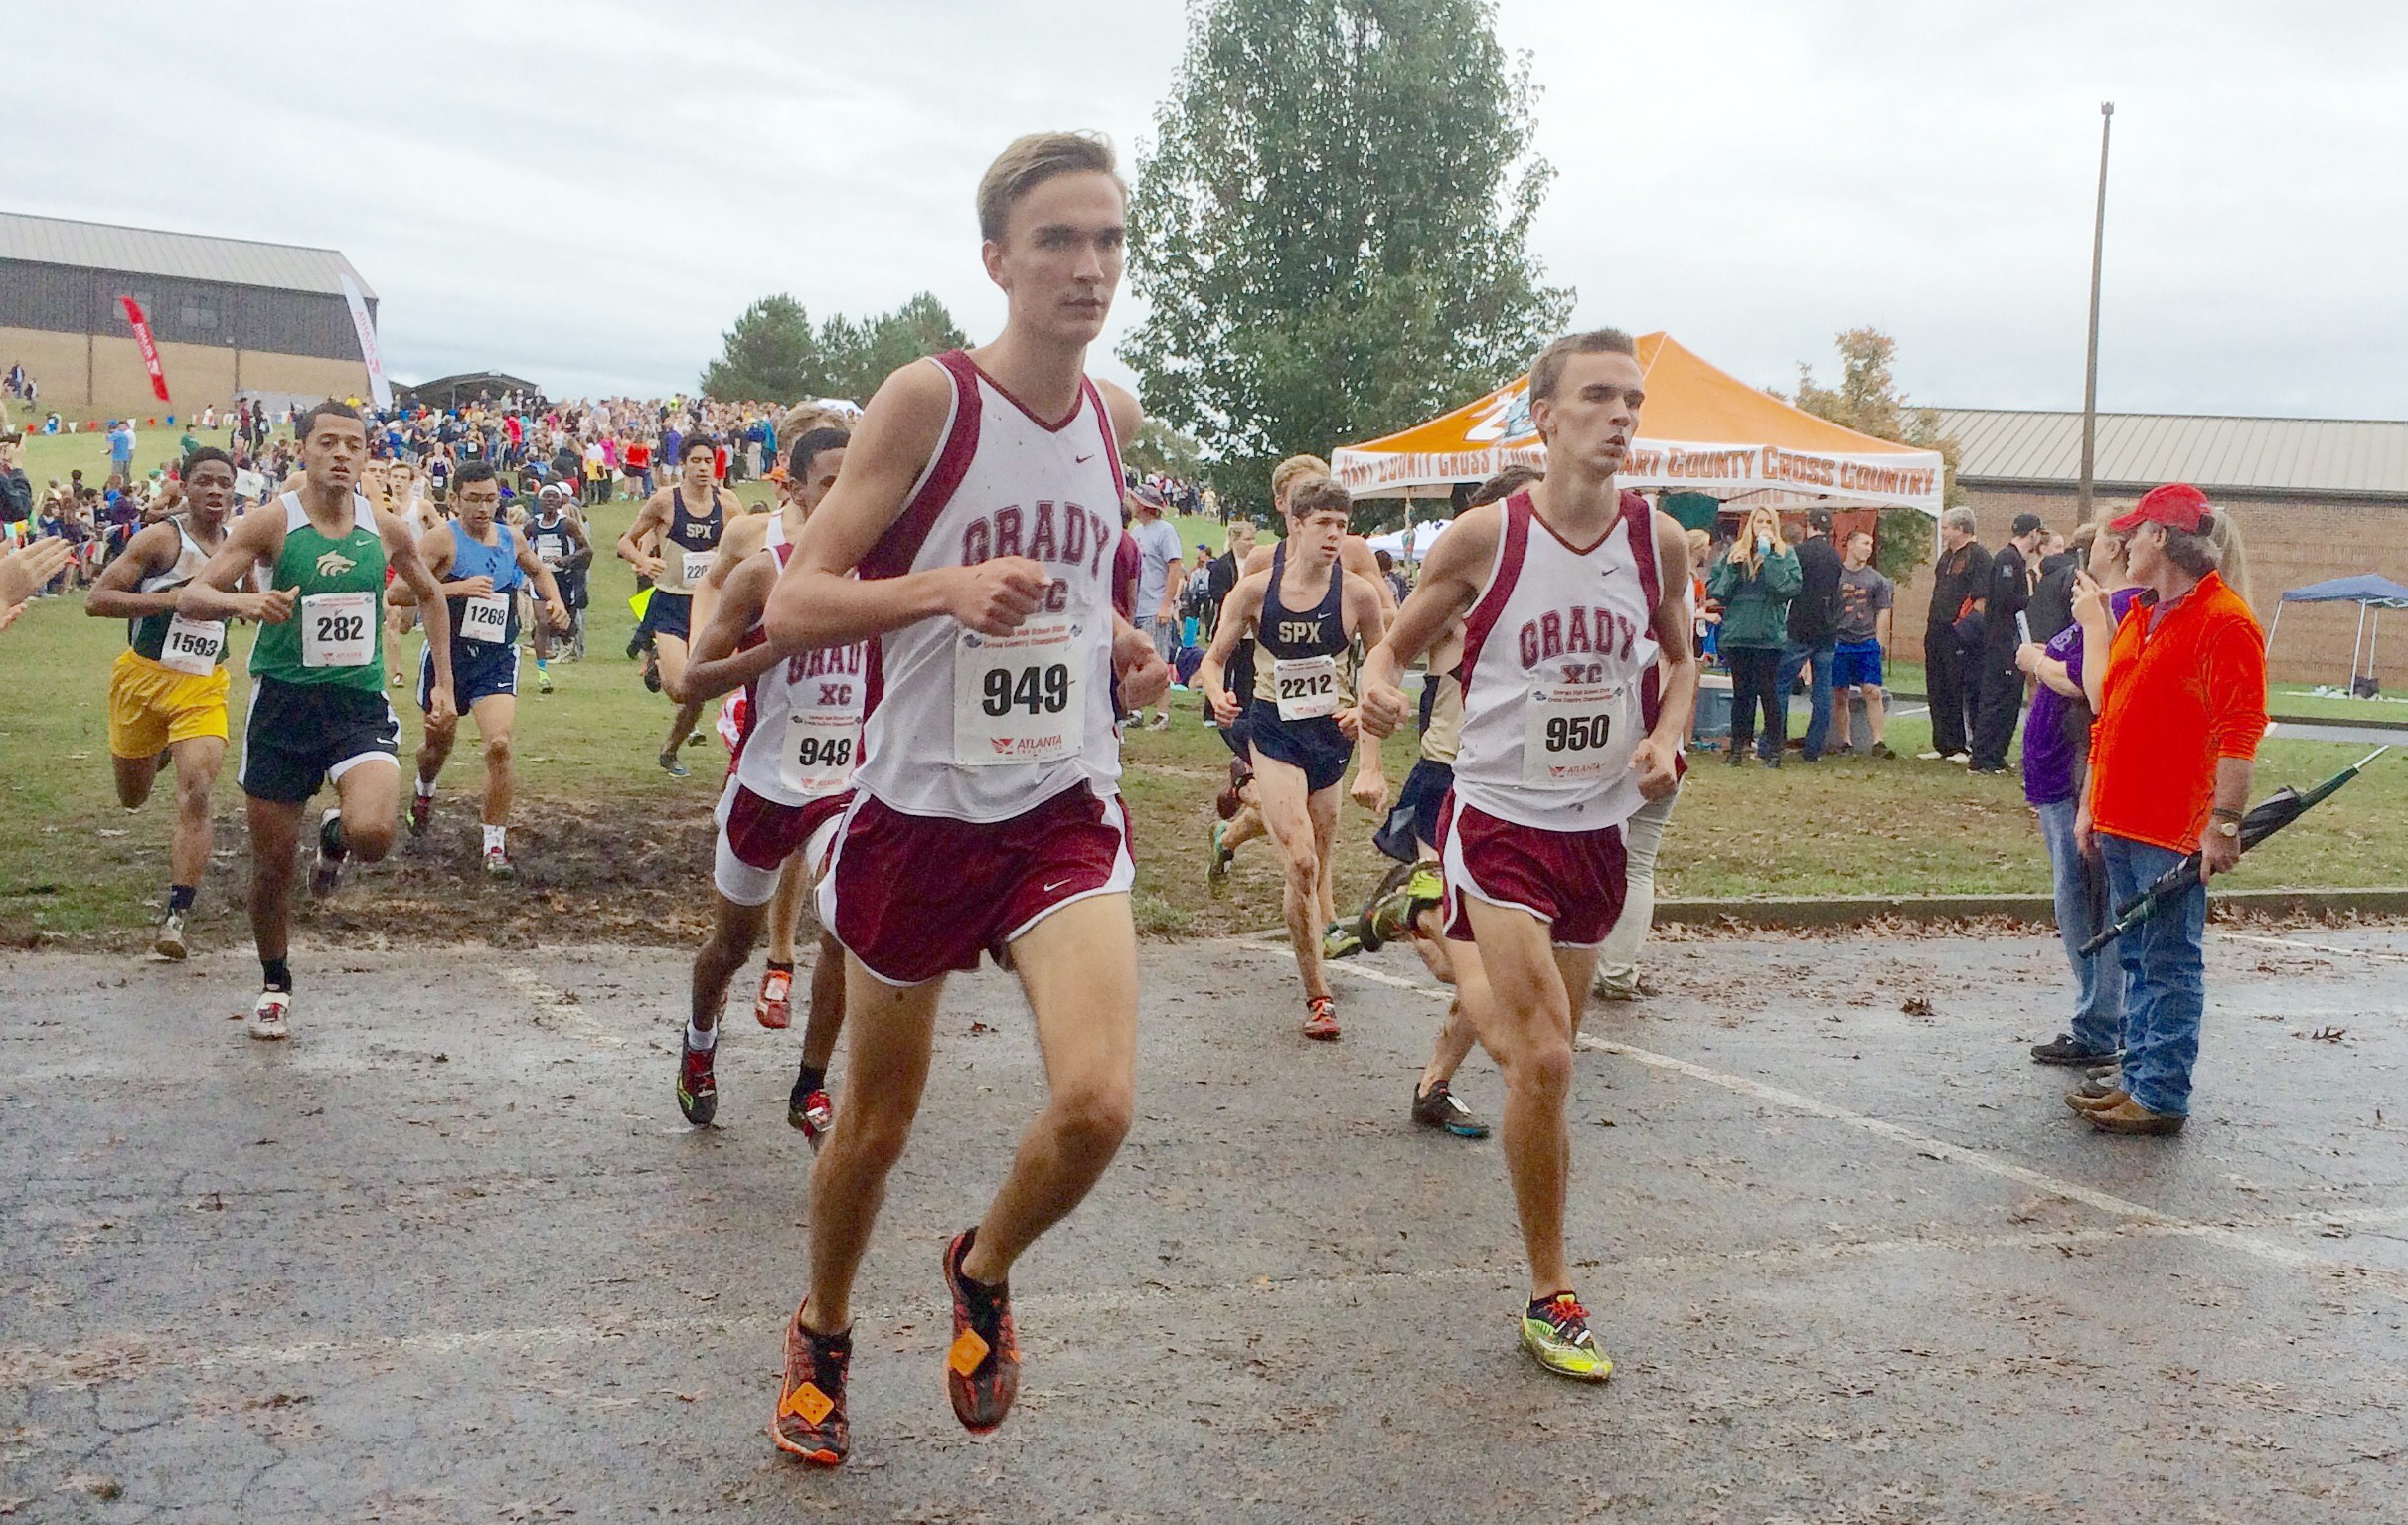 Graham (right) and Anders Russell (left) lead the boys toward the finish line during the state meet.